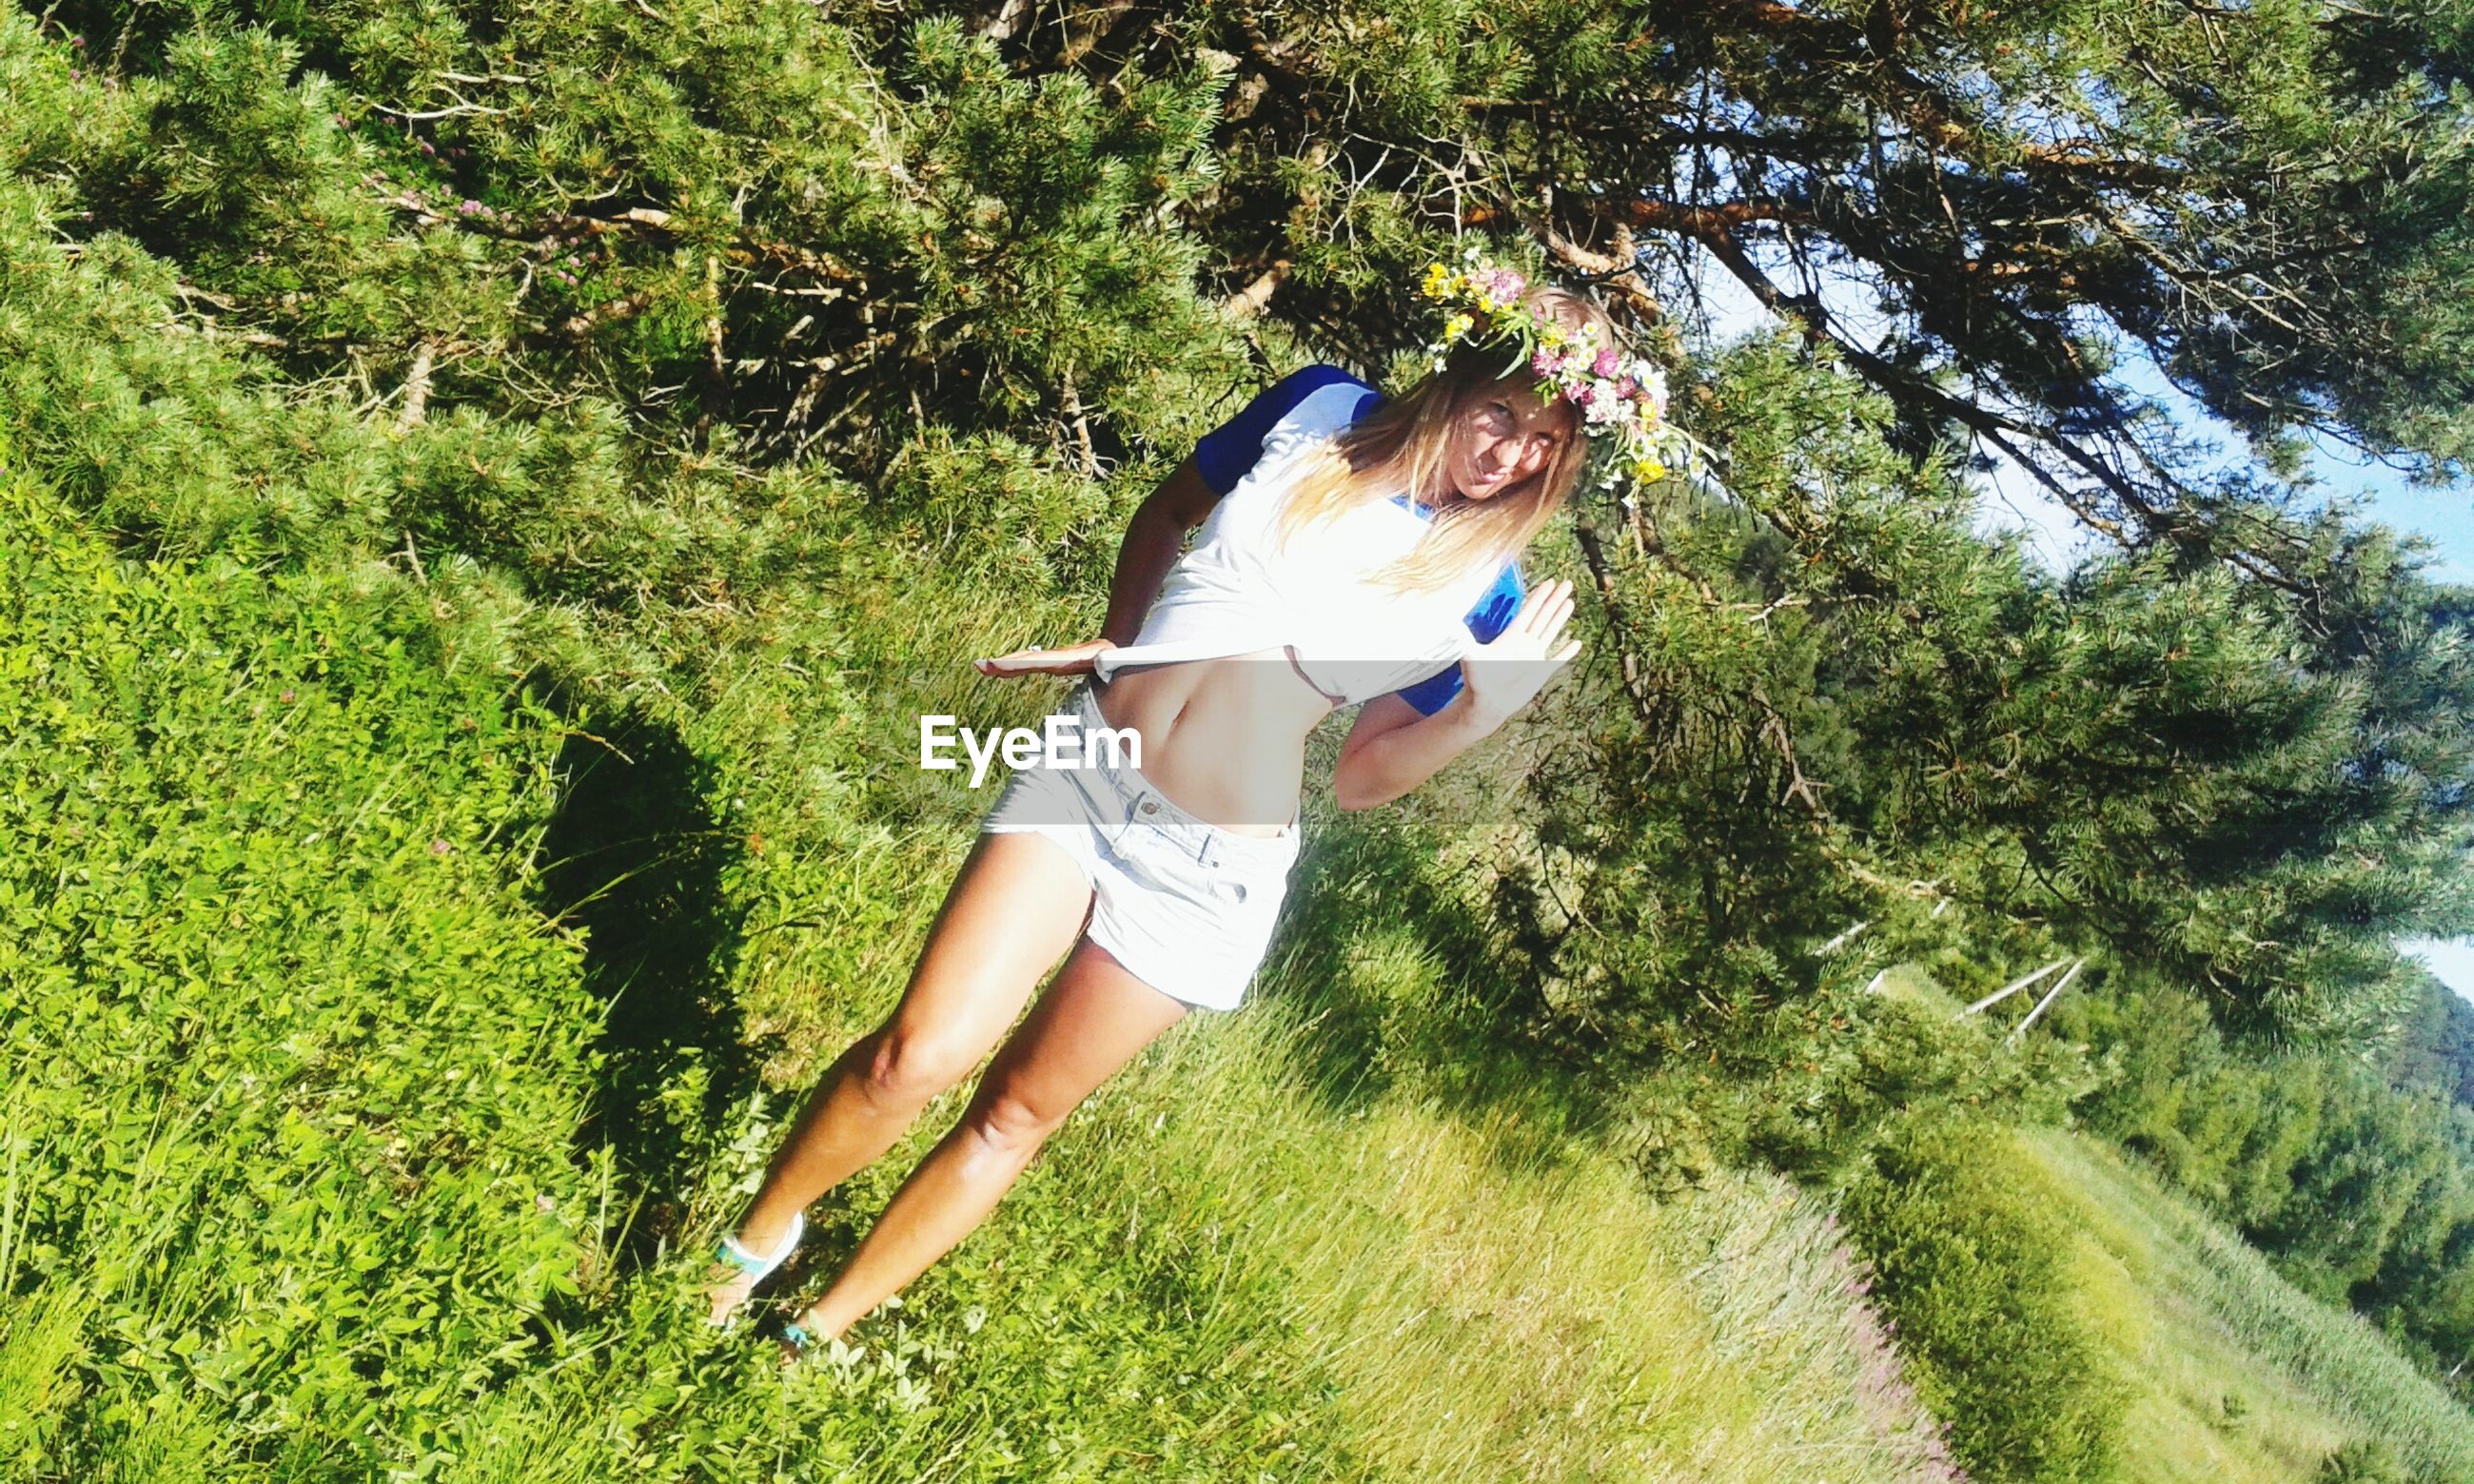 tree, grass, green color, growth, full length, one animal, lifestyles, leisure activity, sunlight, plant, nature, young adult, young women, outdoors, day, field, grassy, park - man made space